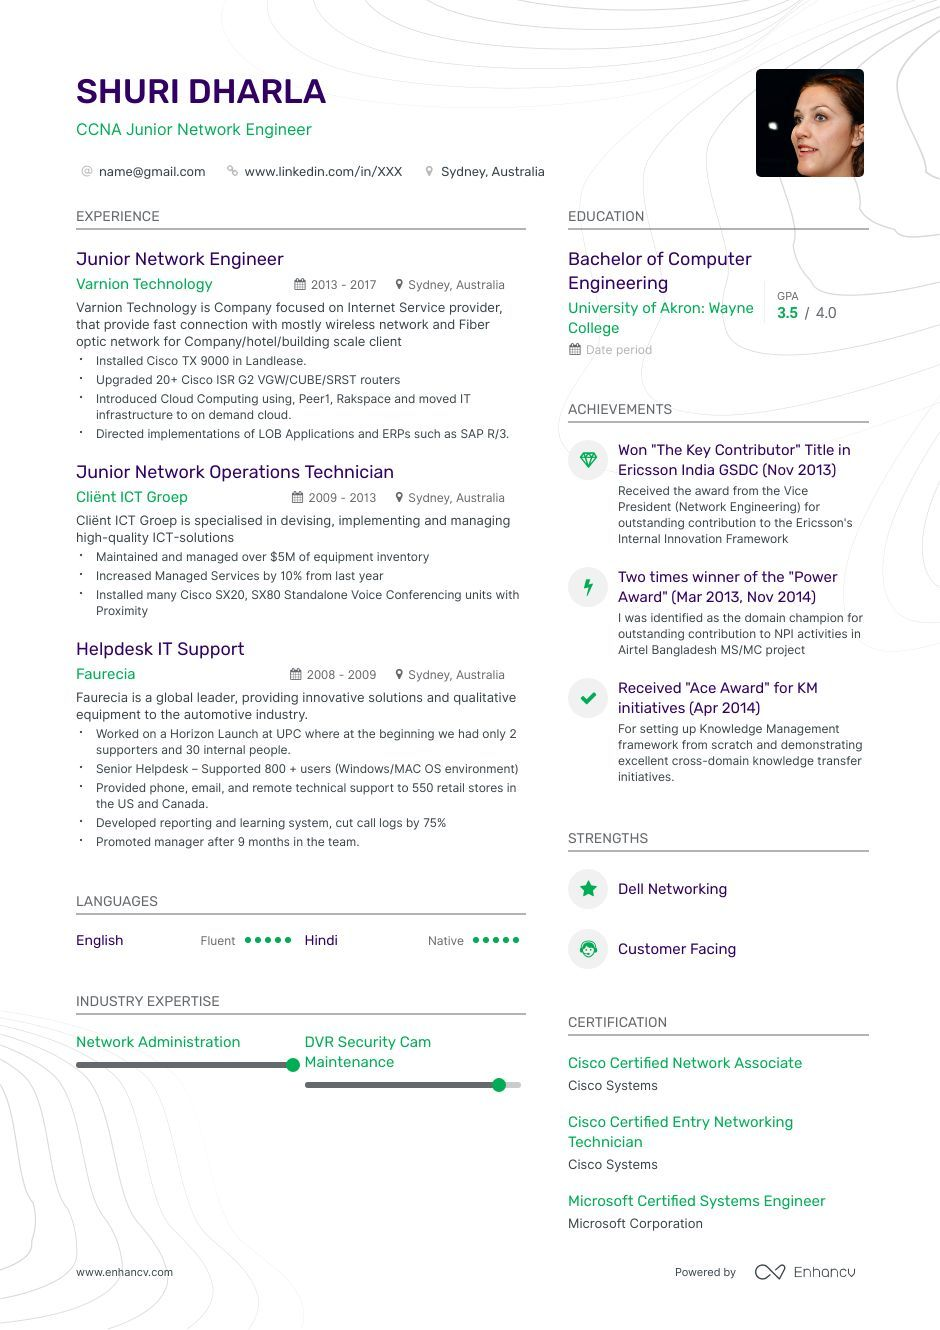 Entry Level Network Engineer Resume Samples 6 Examples Featured Network Engineer Resume Examples Job Resume Examples